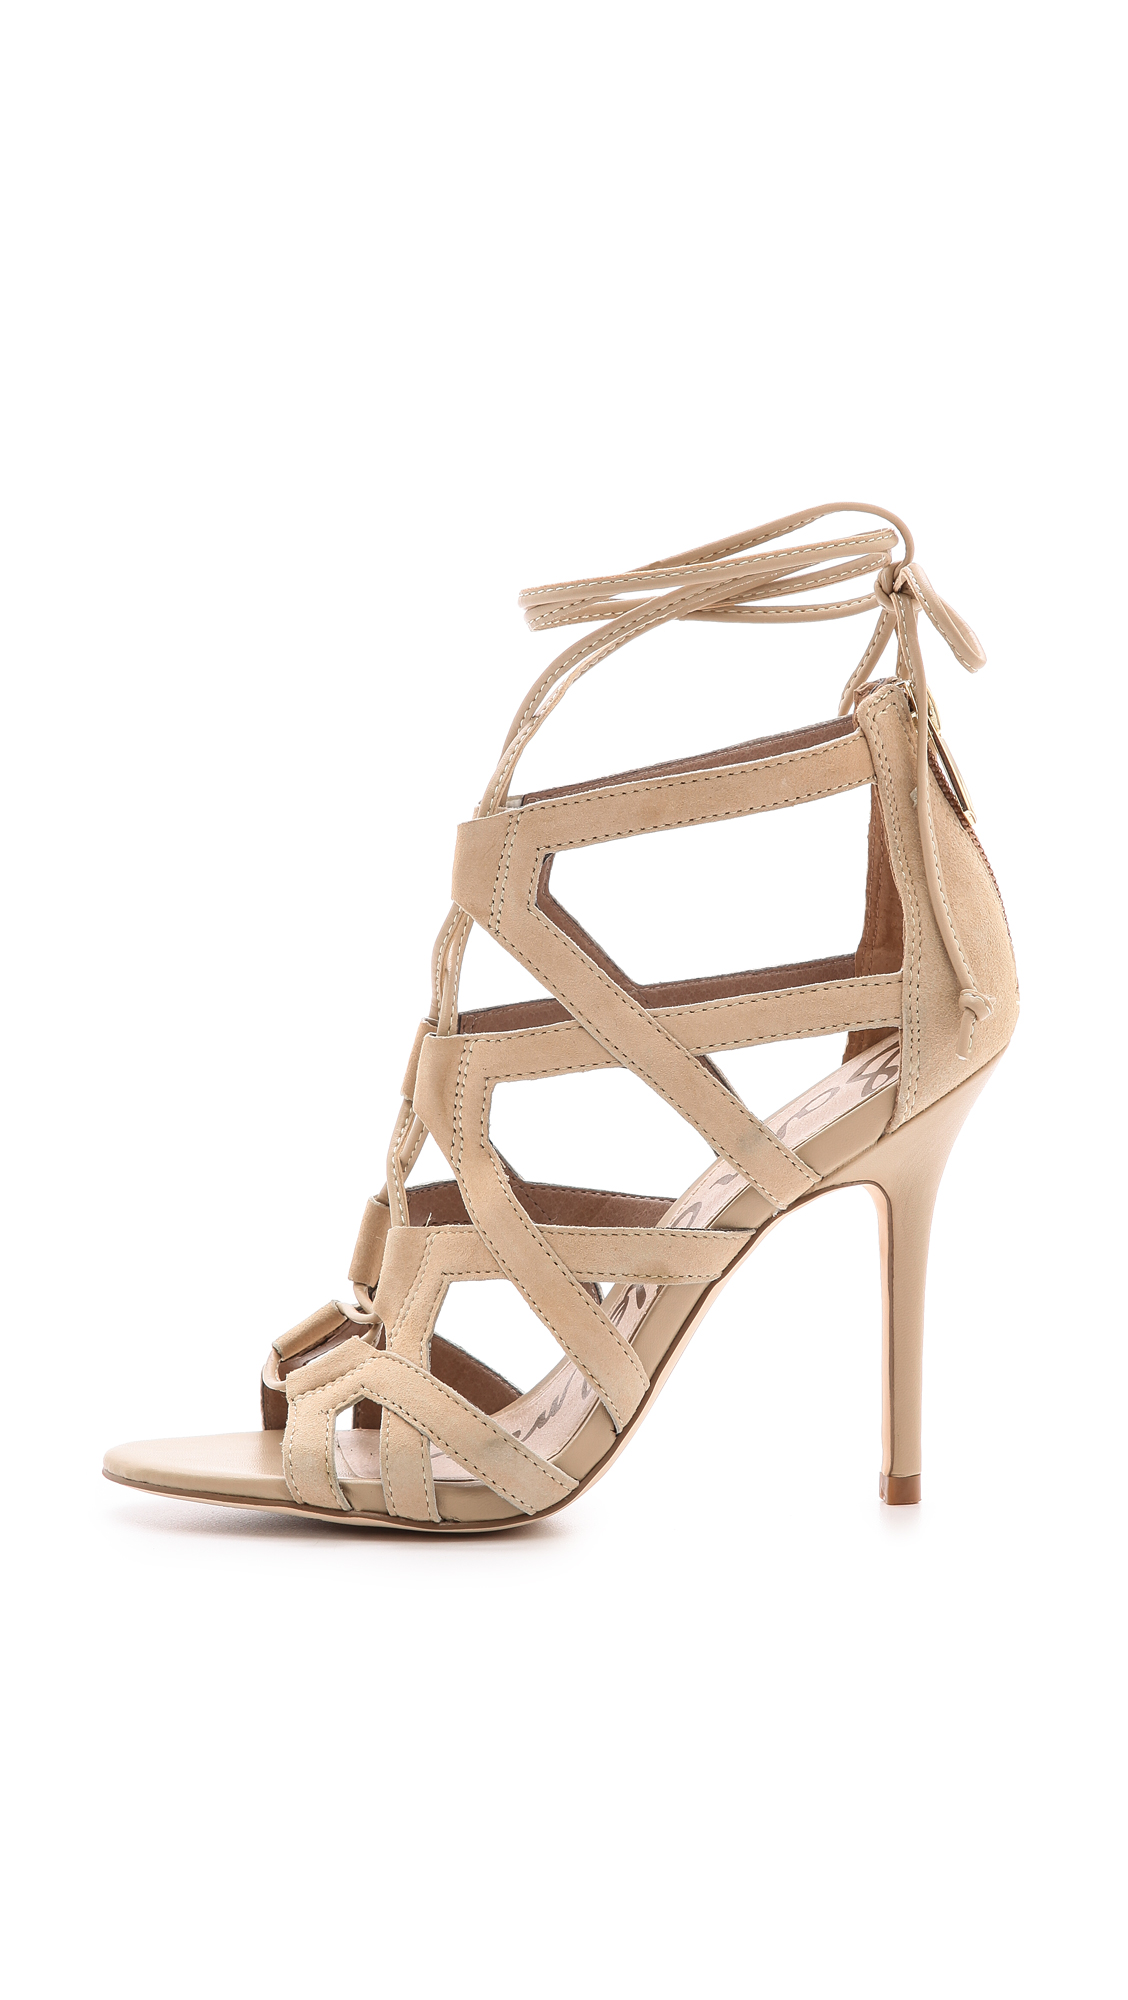 f4b1263b26961 Sam Edelman Almira Lace Up Sandals